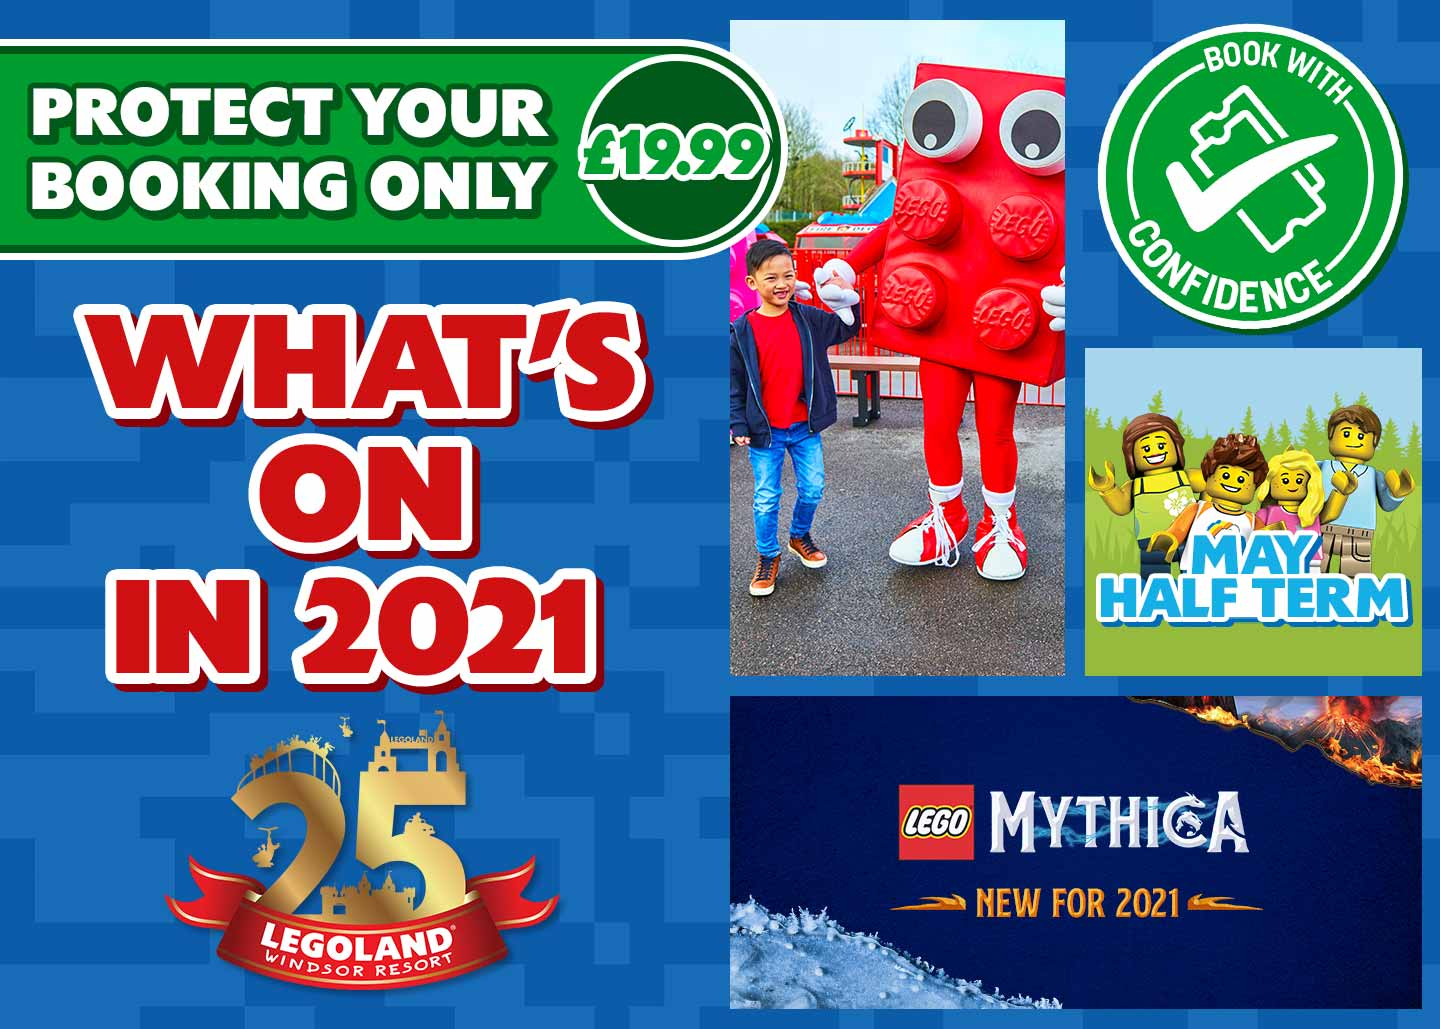 2021 short breaks to the LEGOLAND Windsor Resort